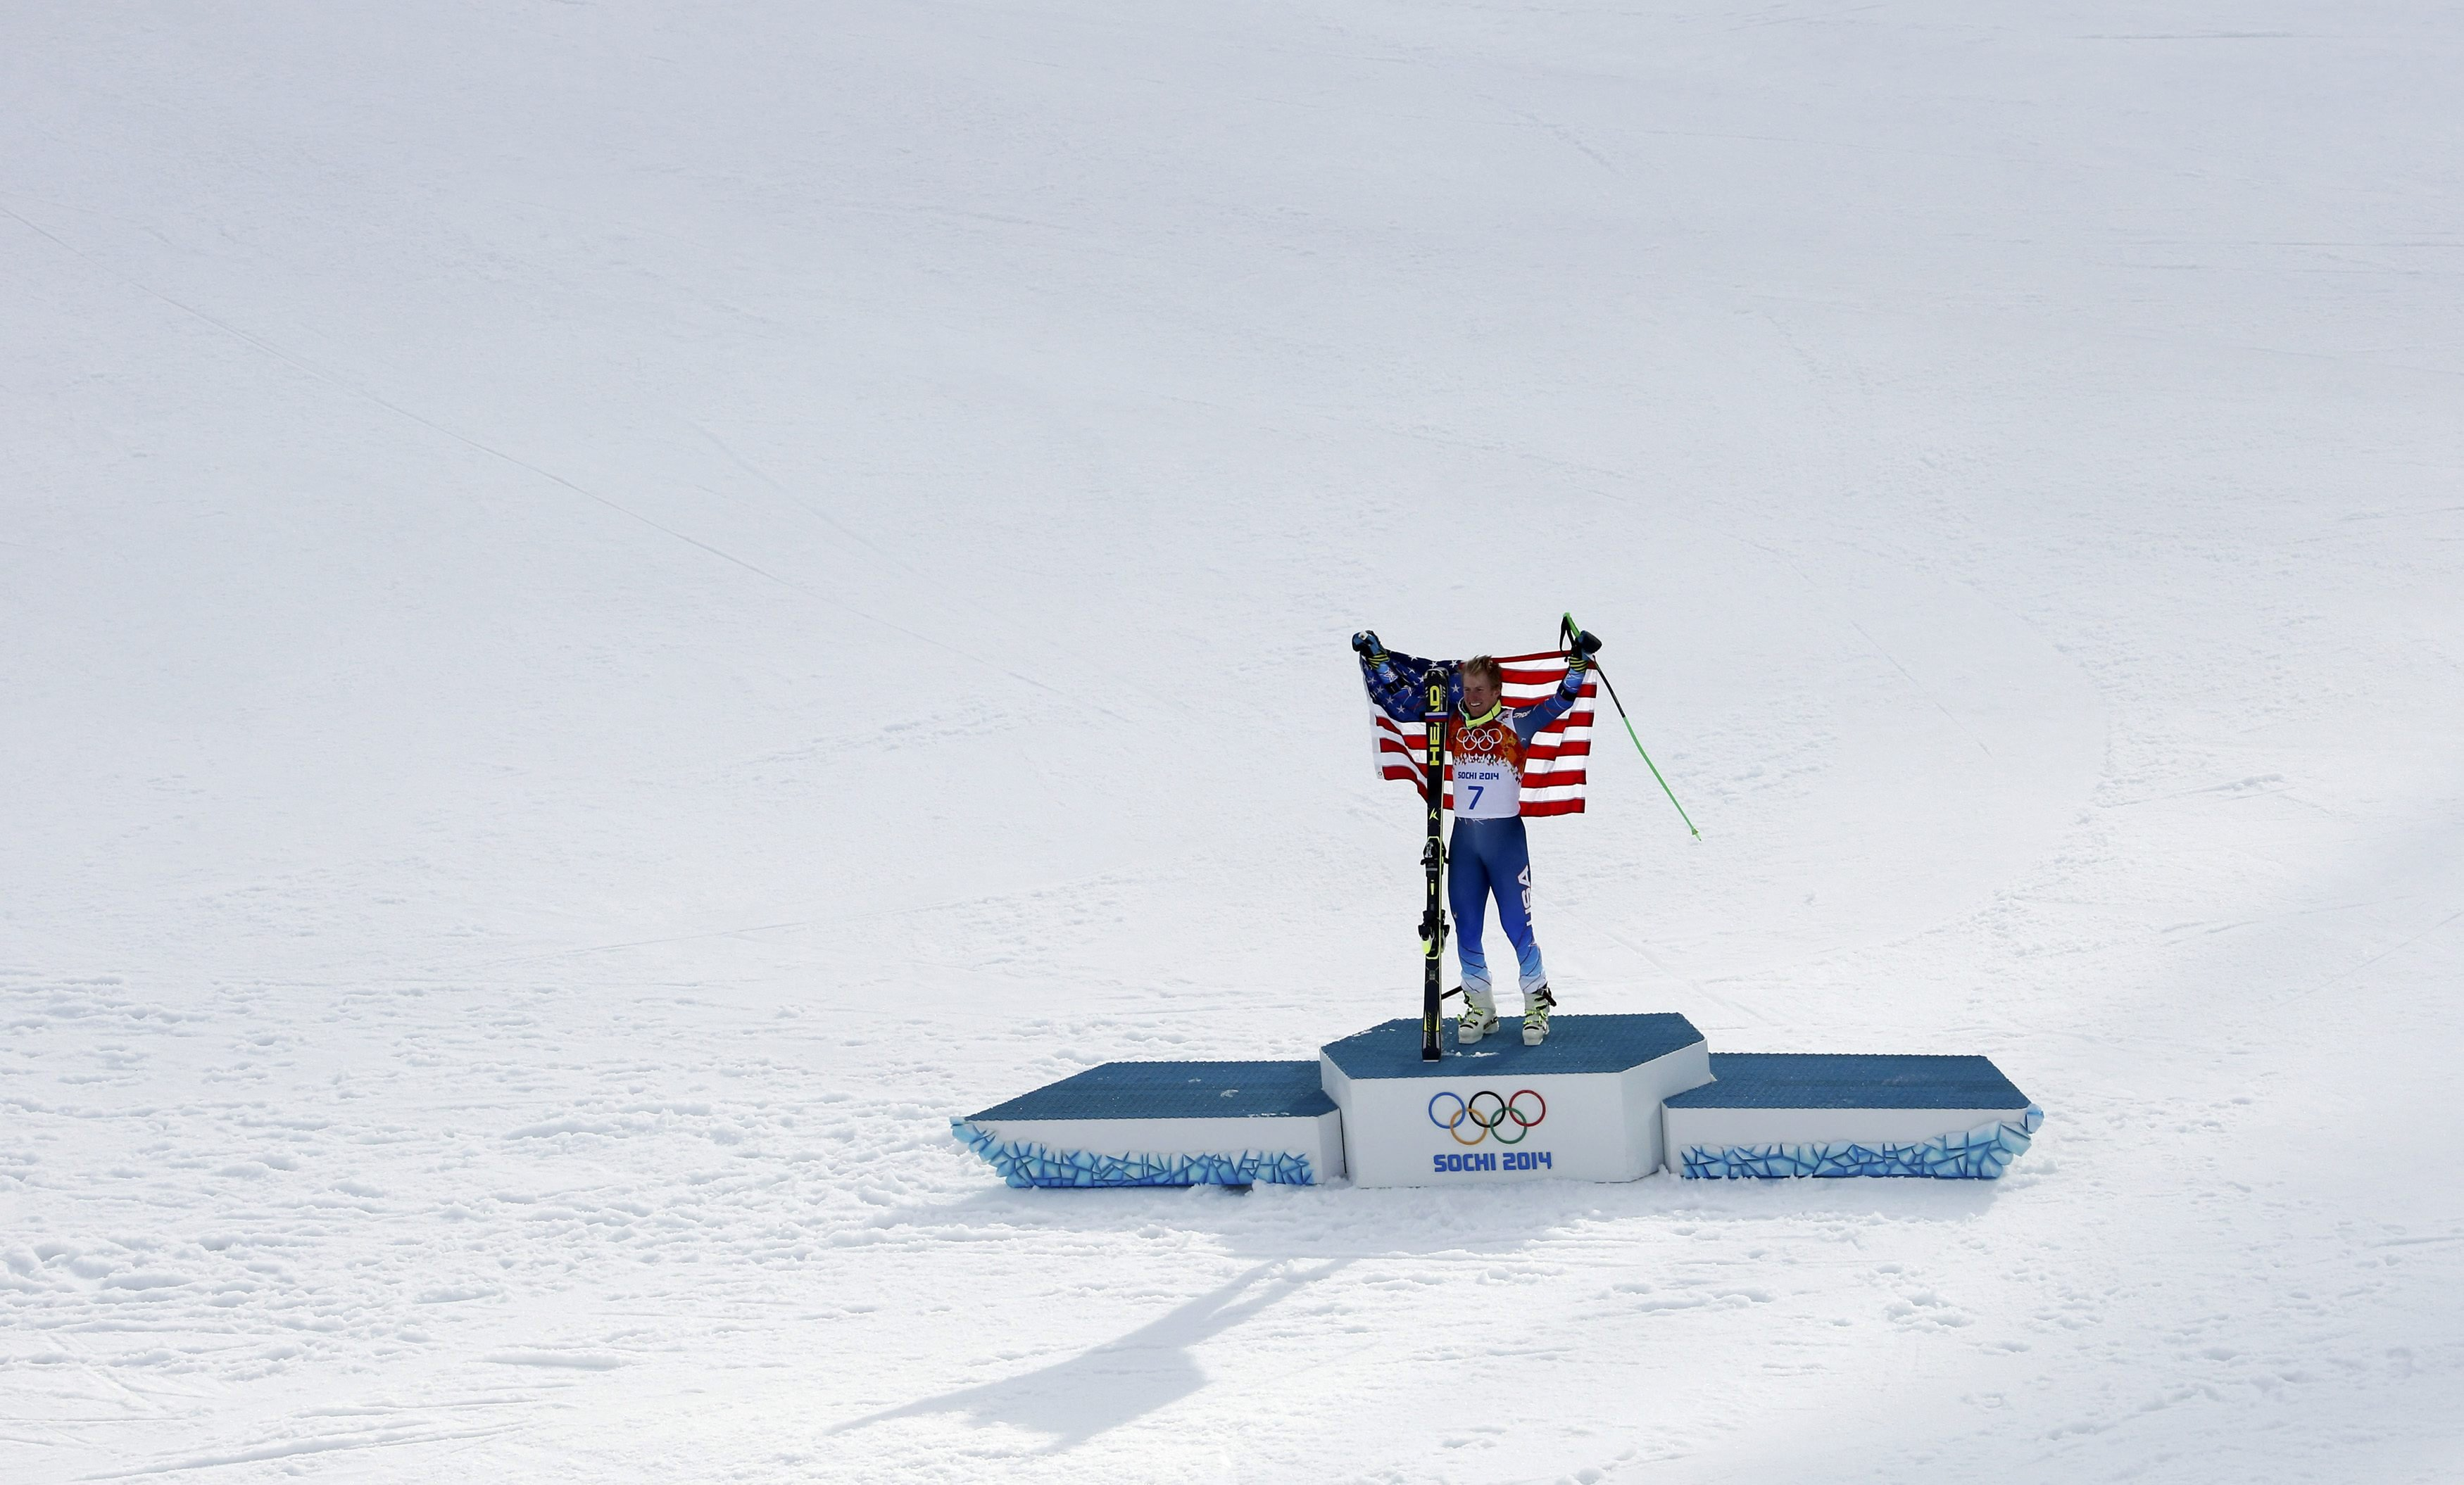 Winner Ted Ligety of the U.S. holds up his flag on the podium after the men's alpine skiing giant slalom event.